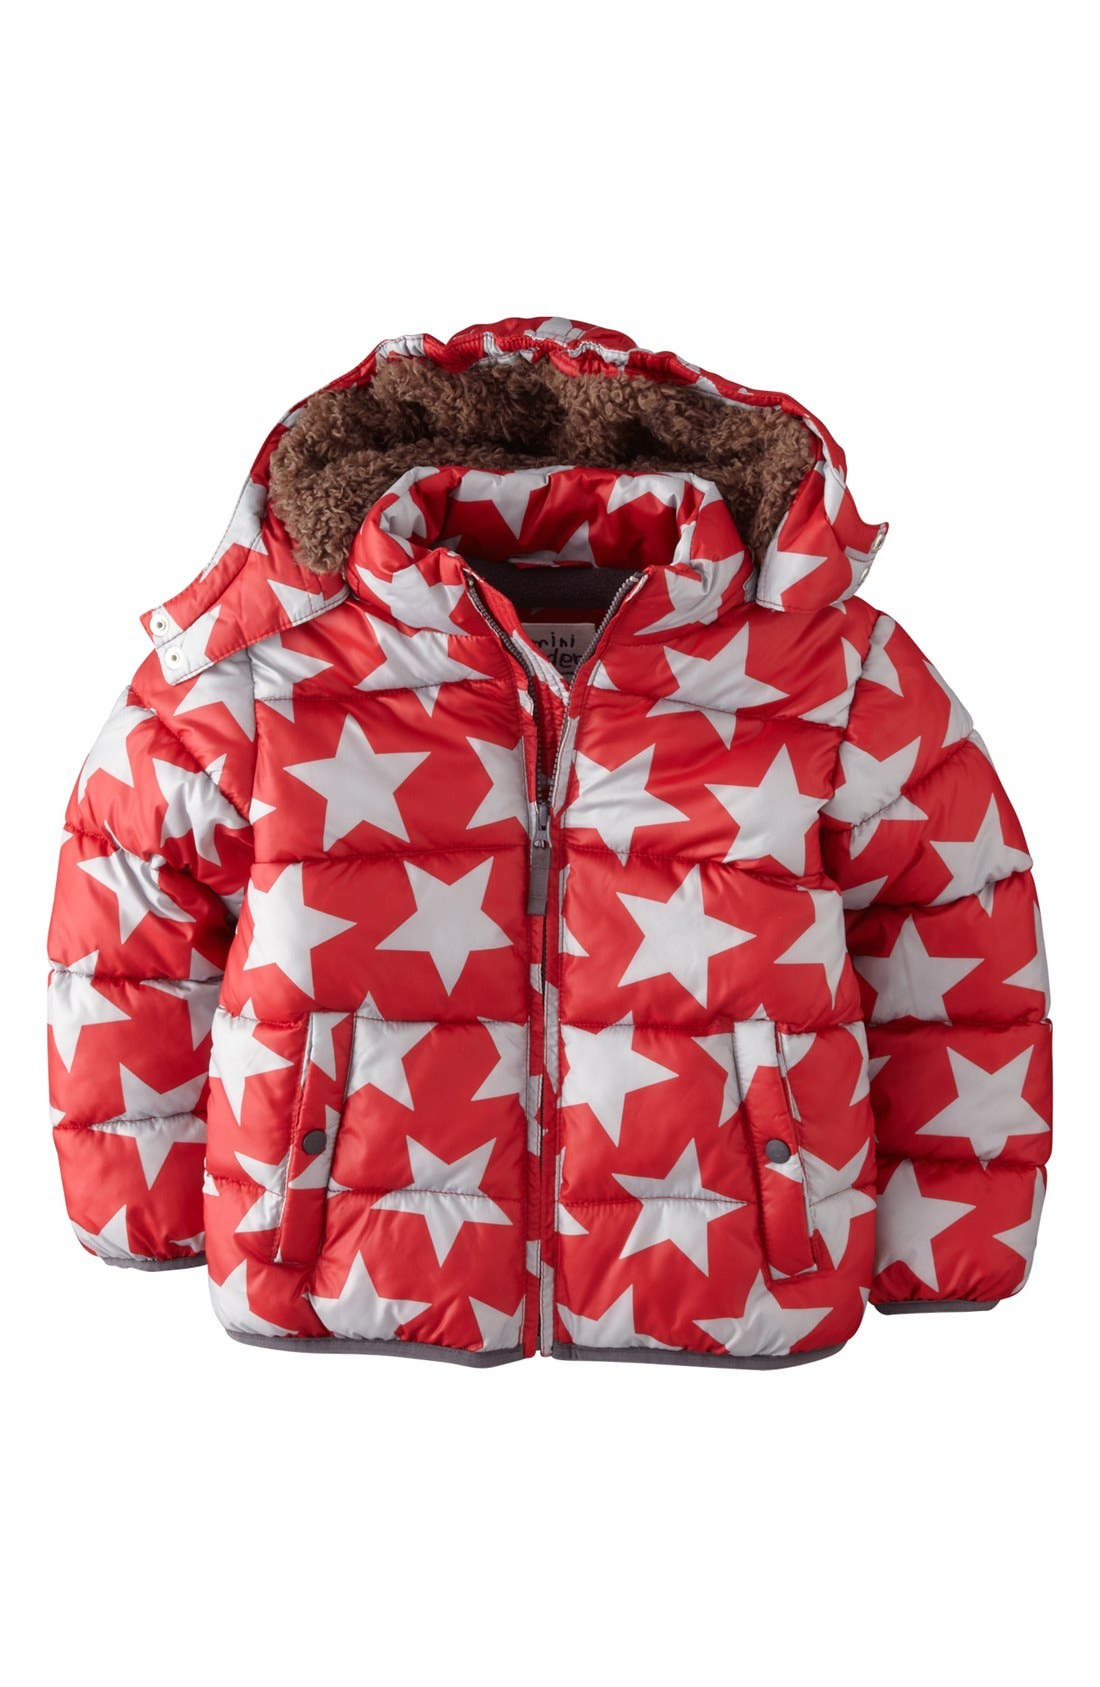 Main Image - Mini Boden Quilted Jacket (Toddler Boys)